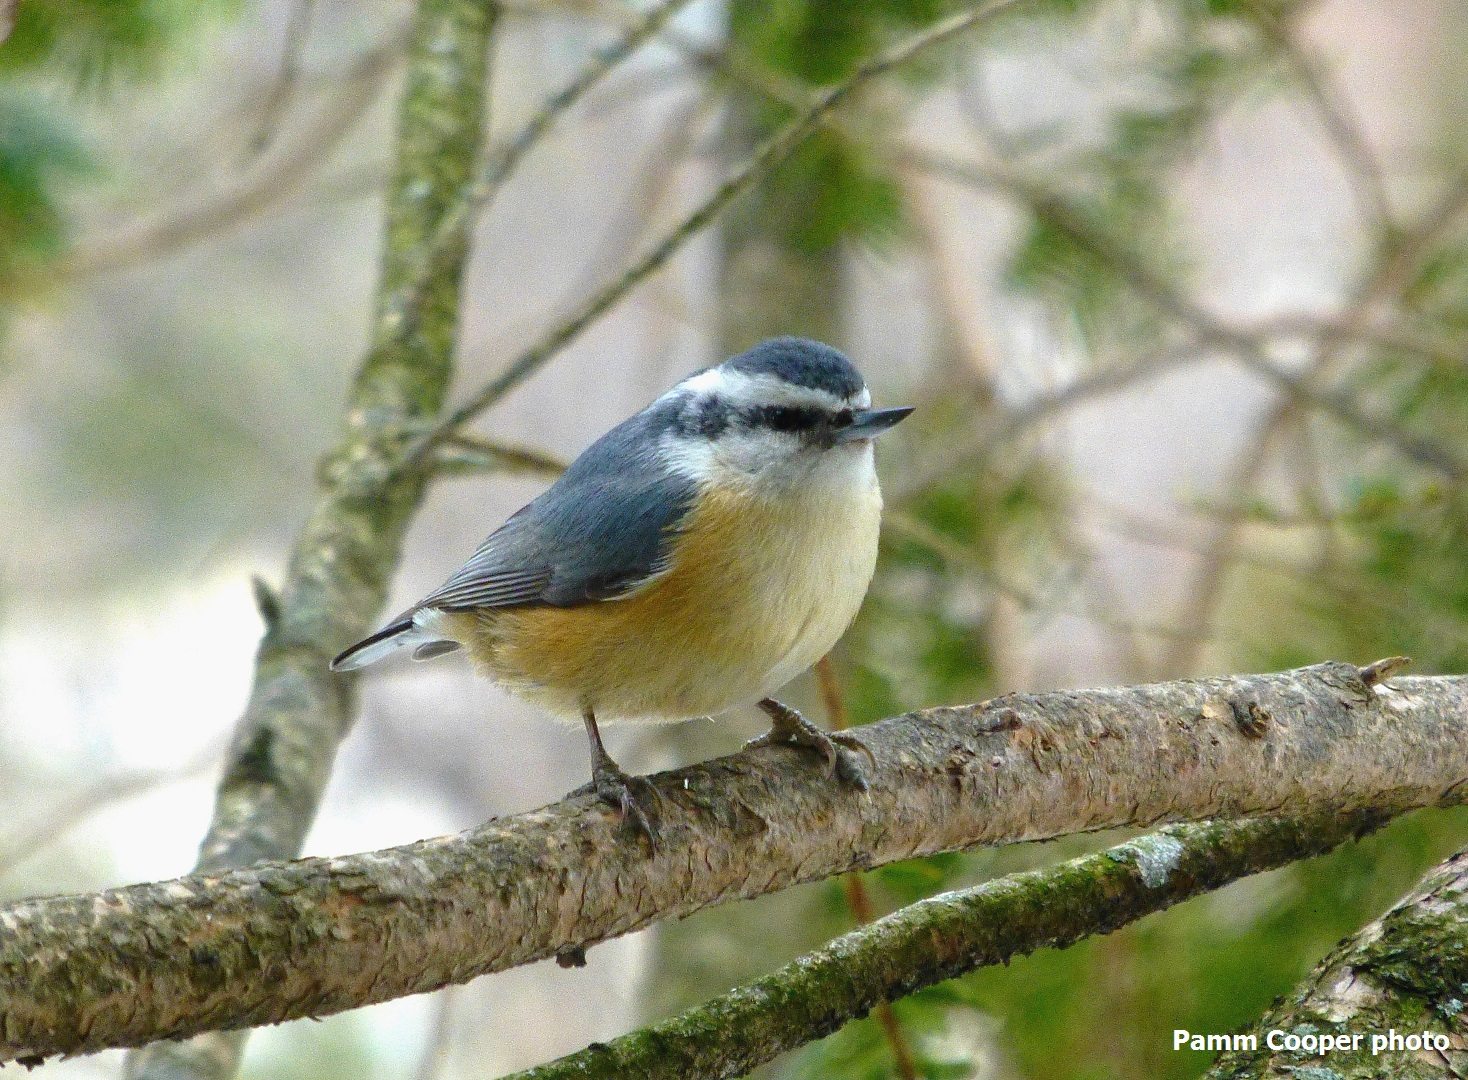 red-breasted-nuthatch-in-februaryi-pamm-cooper-photo